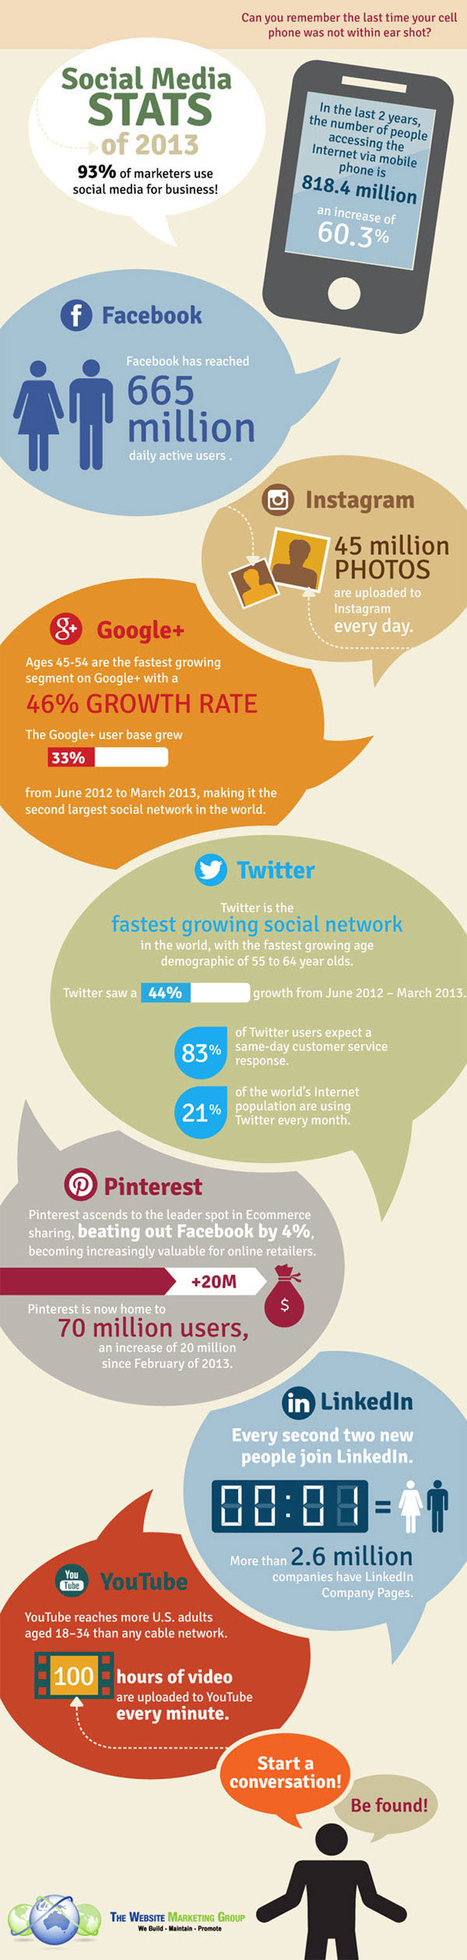 The Social Media Stats of 2013 an infographic /@BerriePelser | Web 2.0 infos | Scoop.it